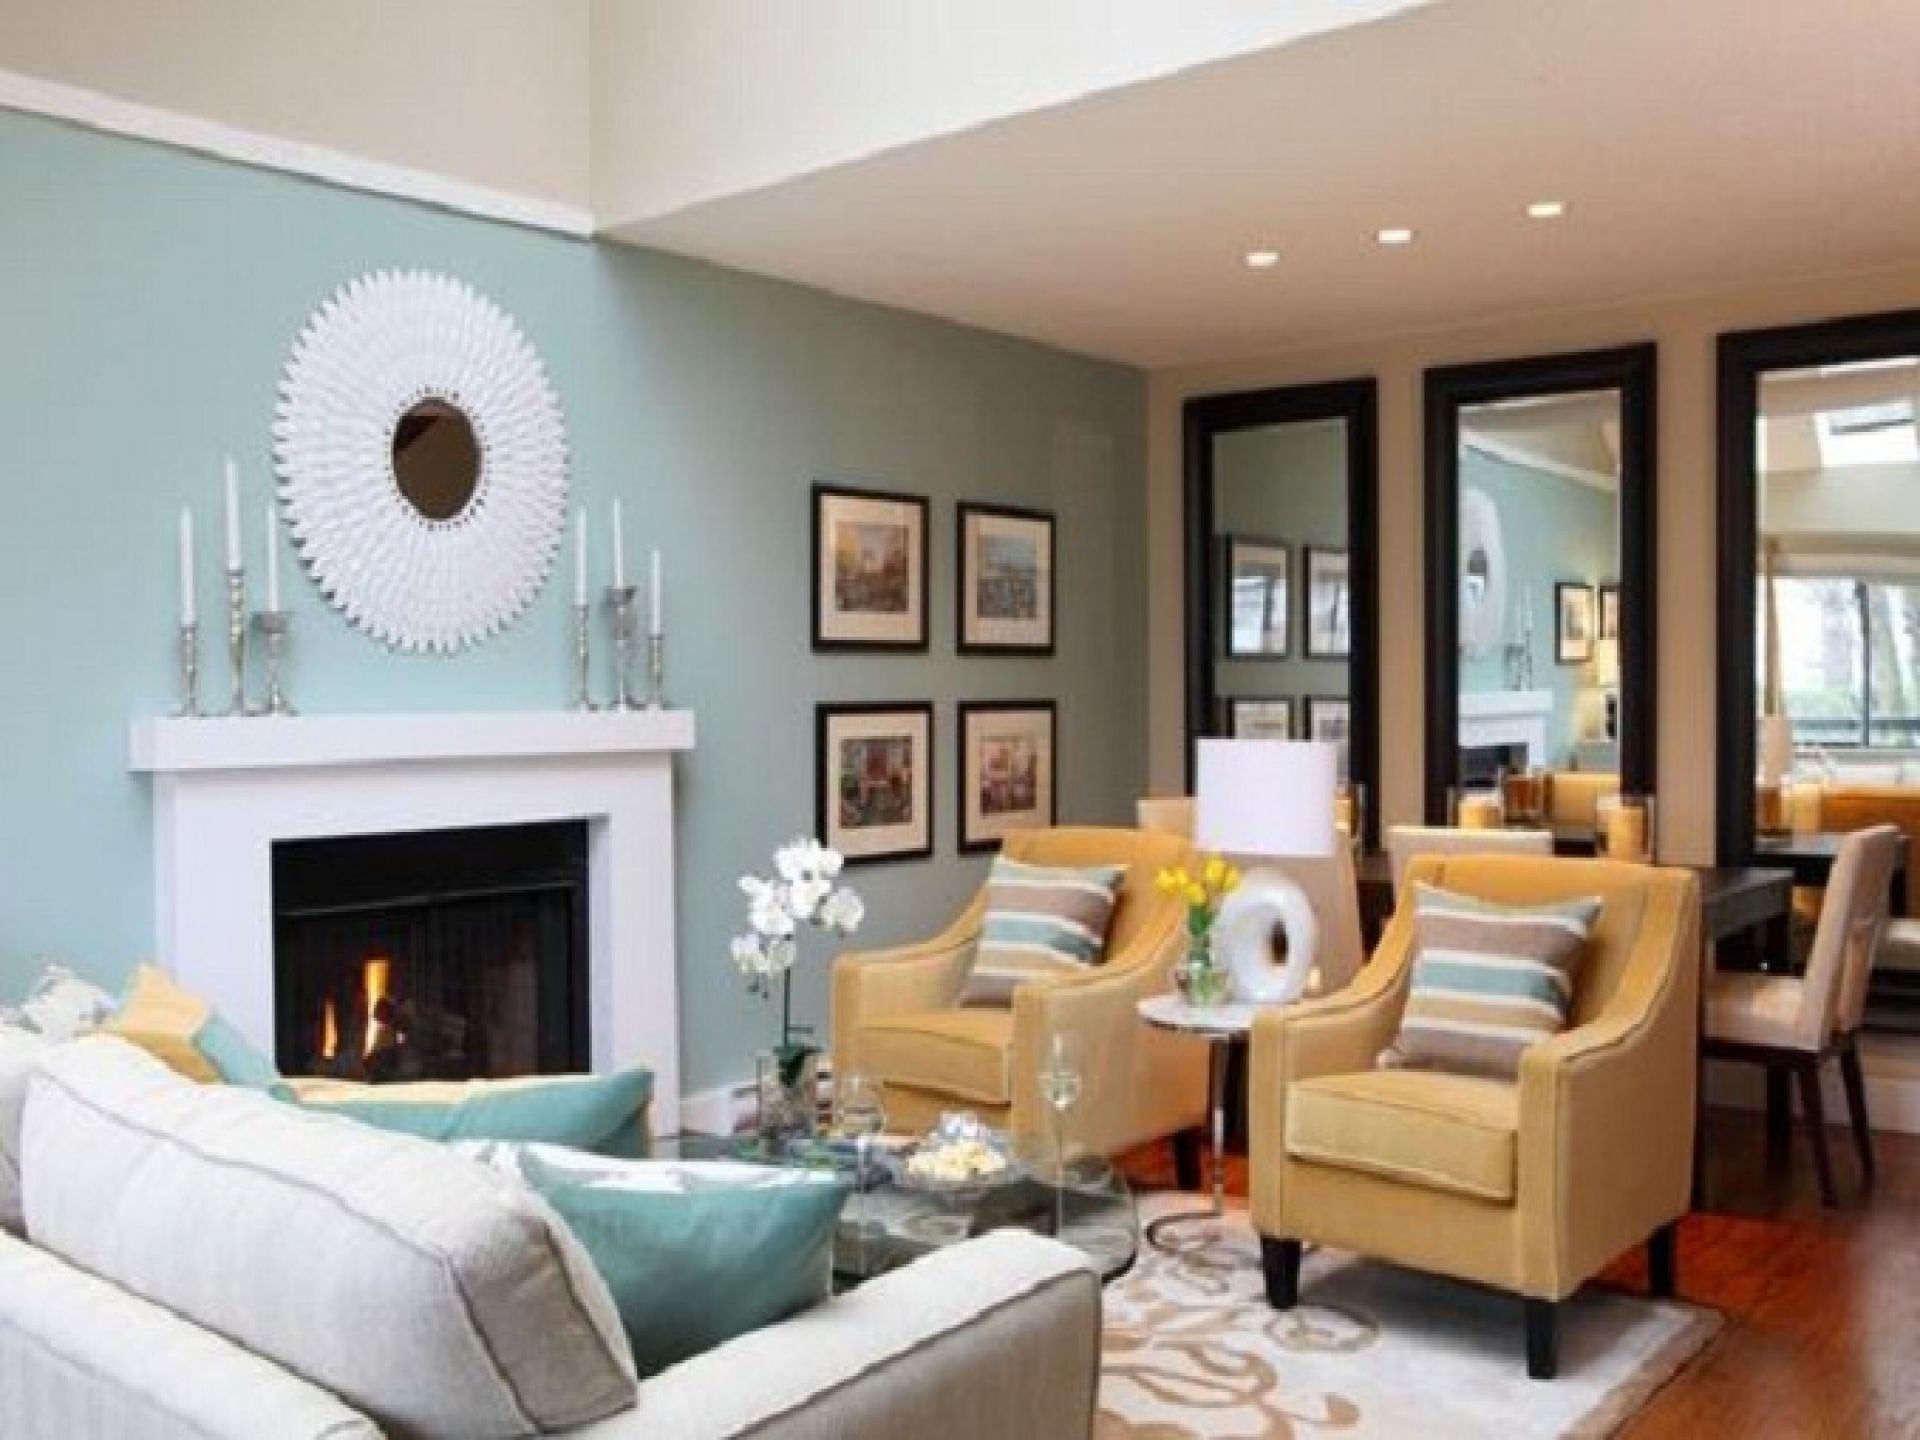 Blue living room design ideas - Blue Color Schemes For Living Rooms Blue Living Room